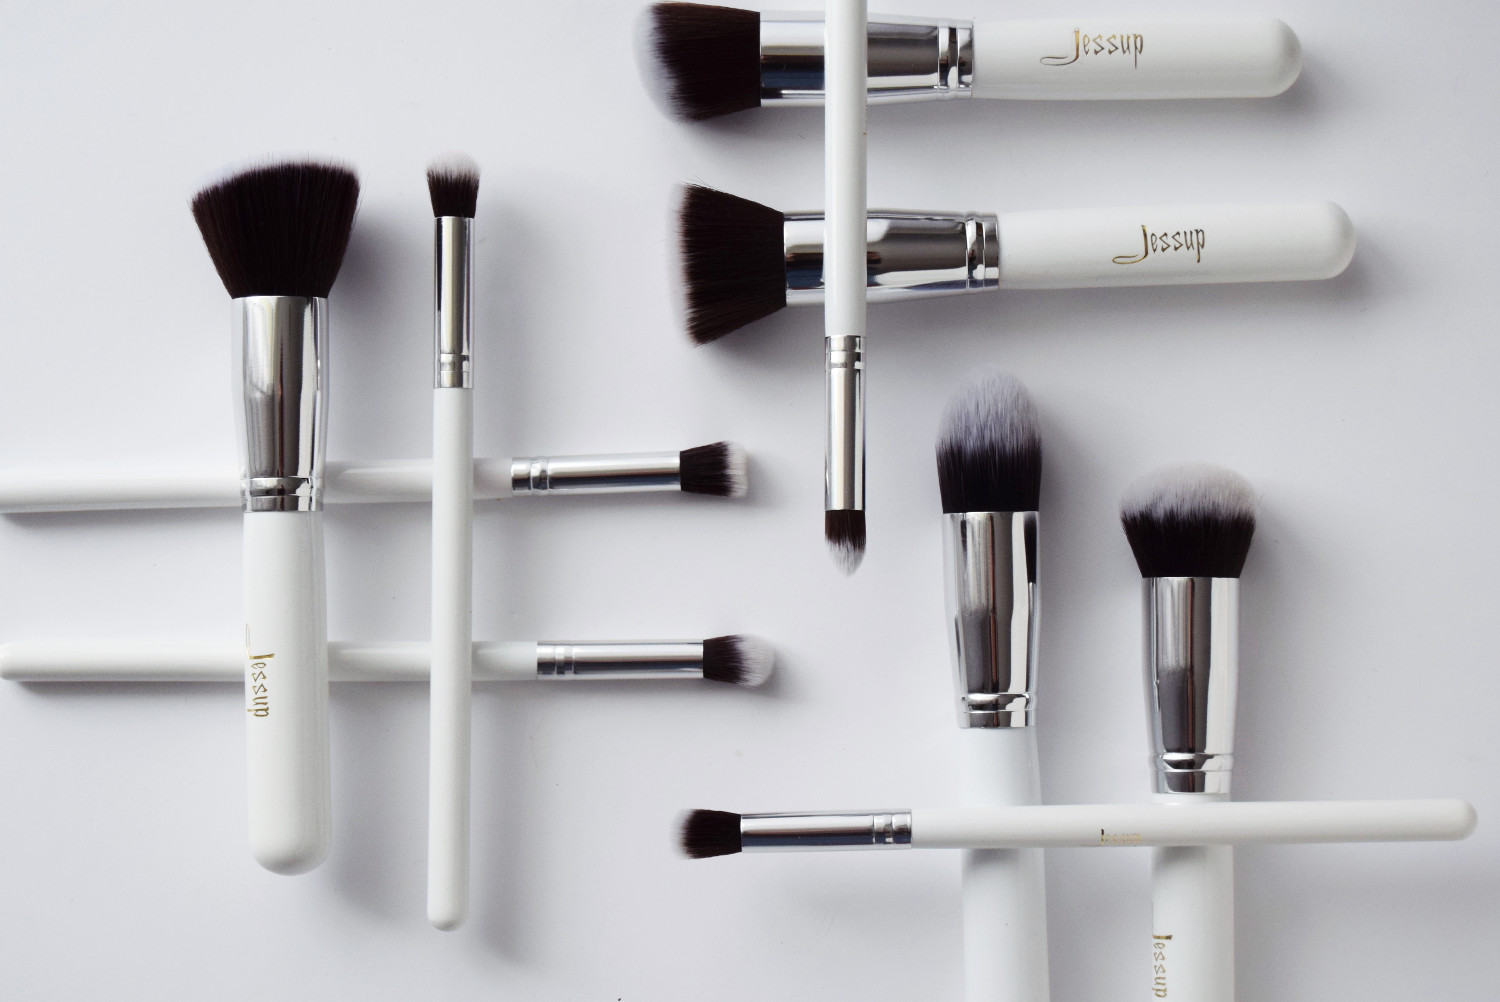 jessup_brushes_review_new_in_zalabell_blog_makeup_beauty_7